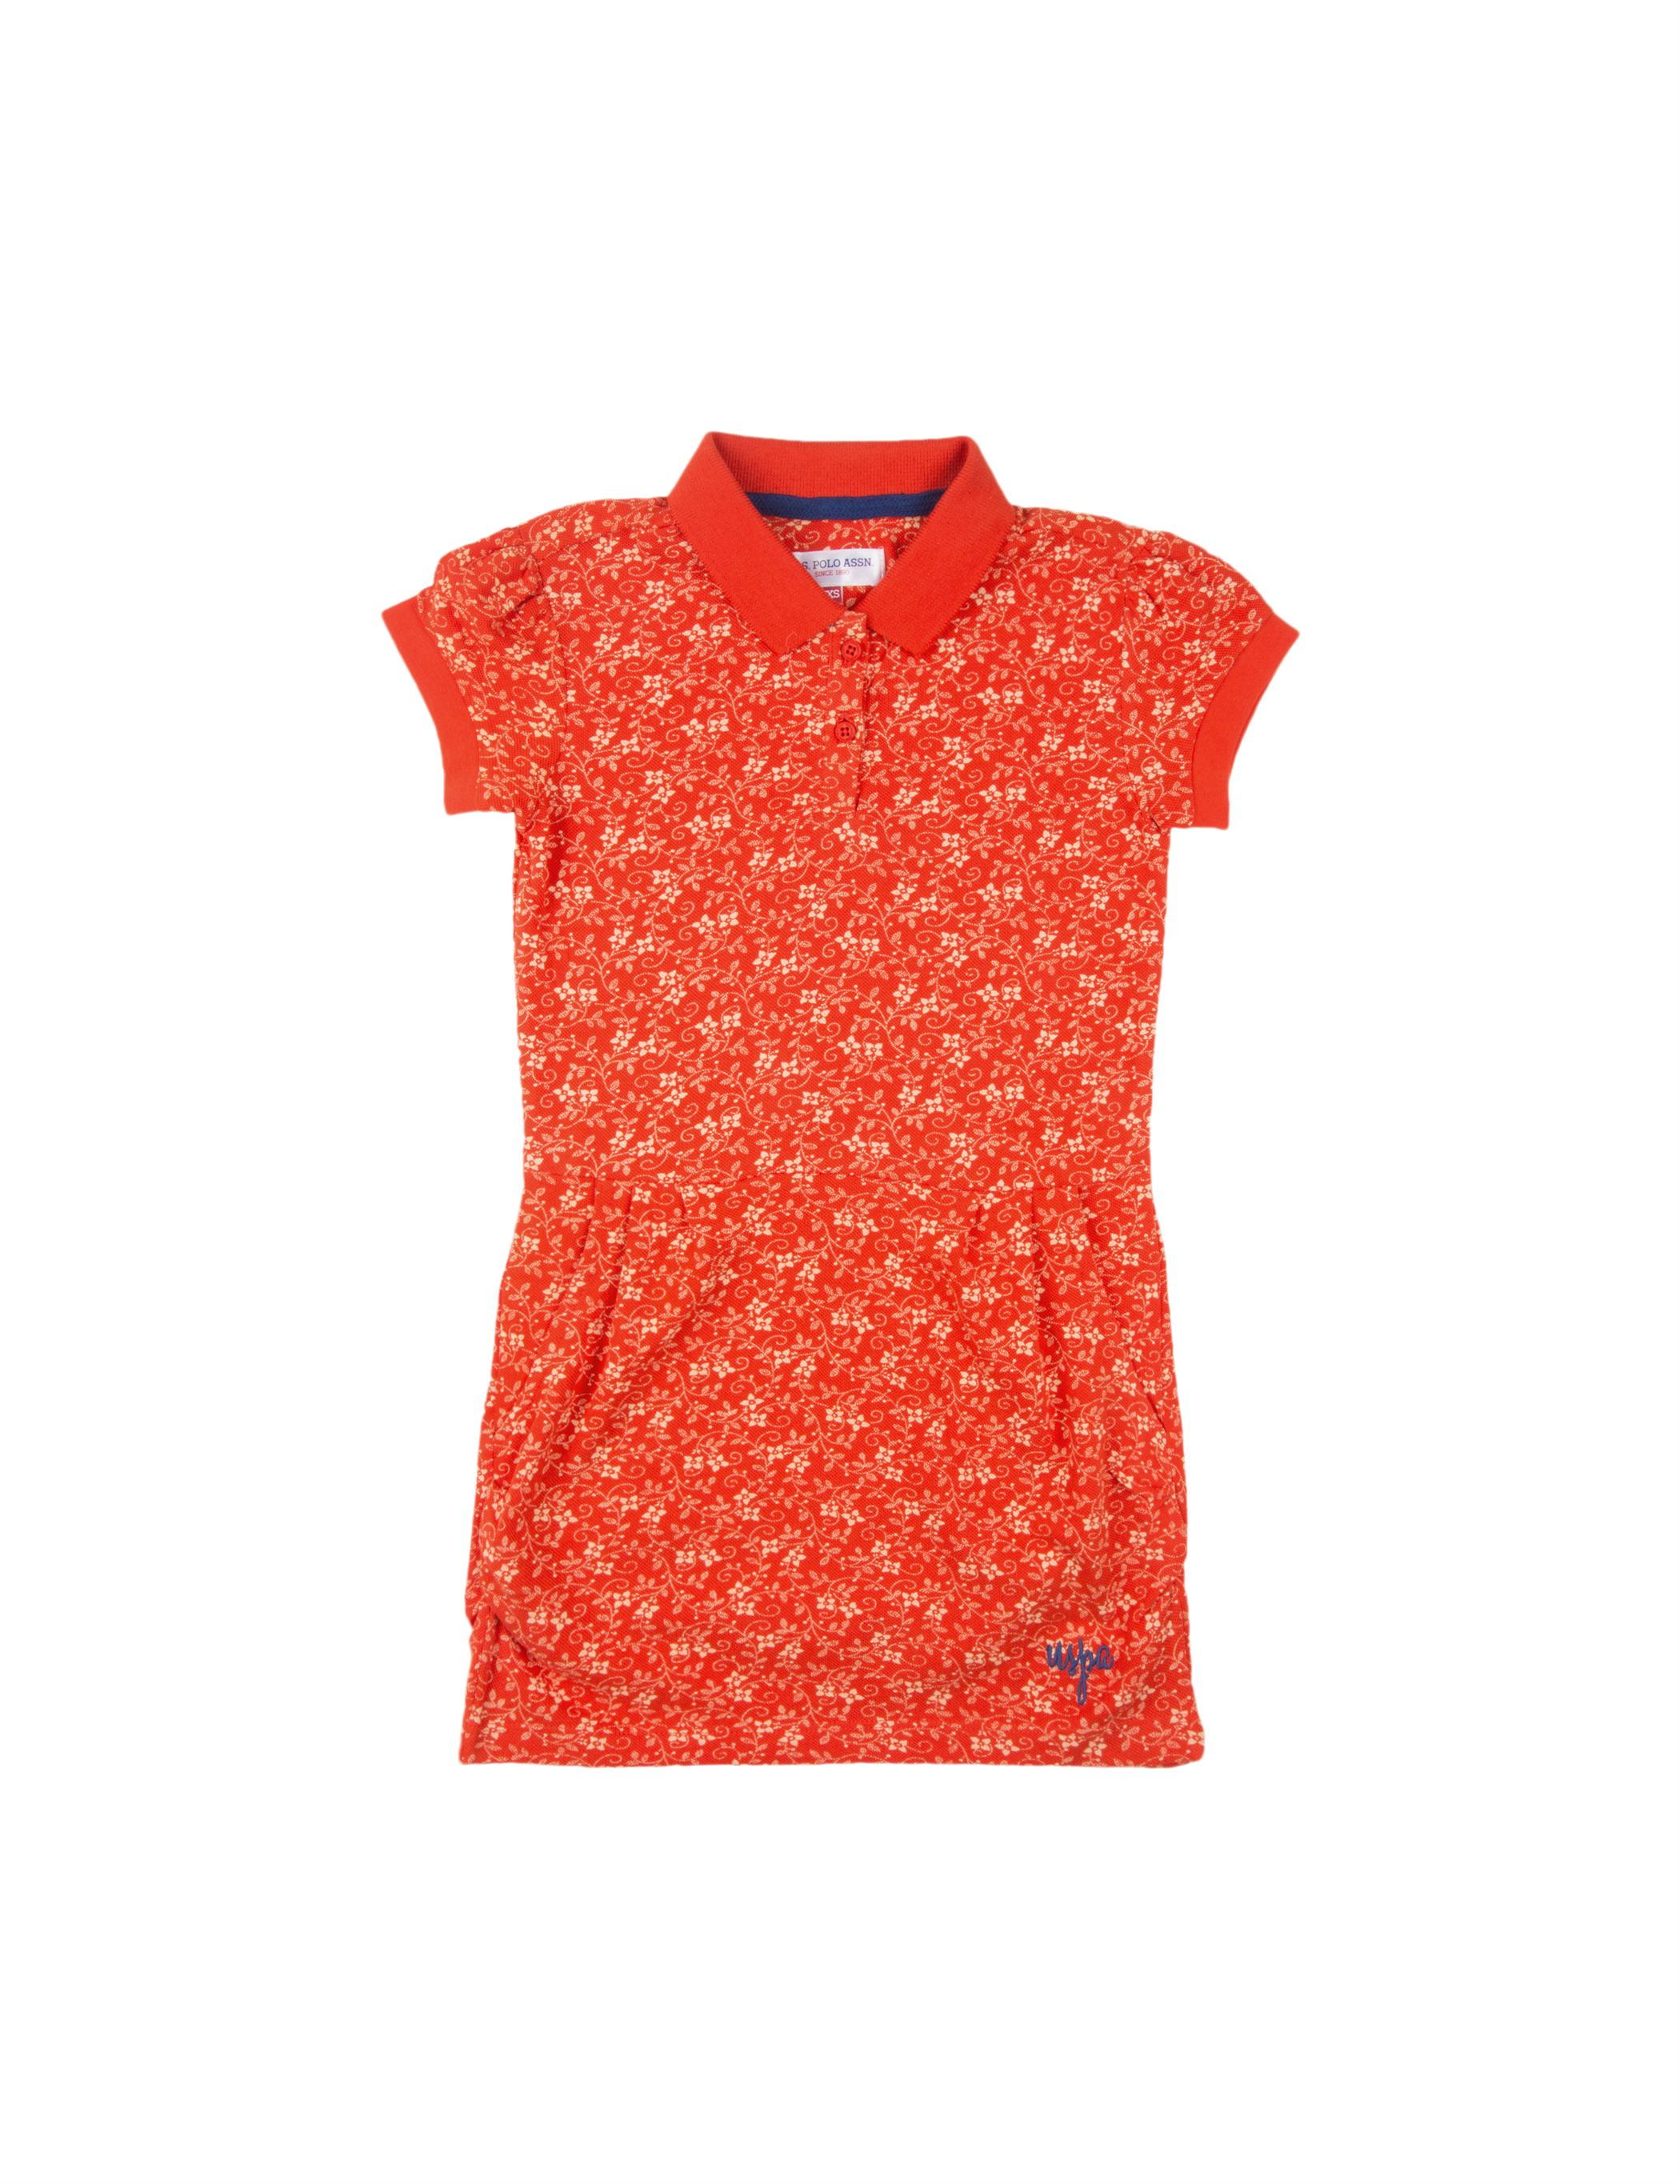 U.S. Polo Assn. Casual Printed  Dress